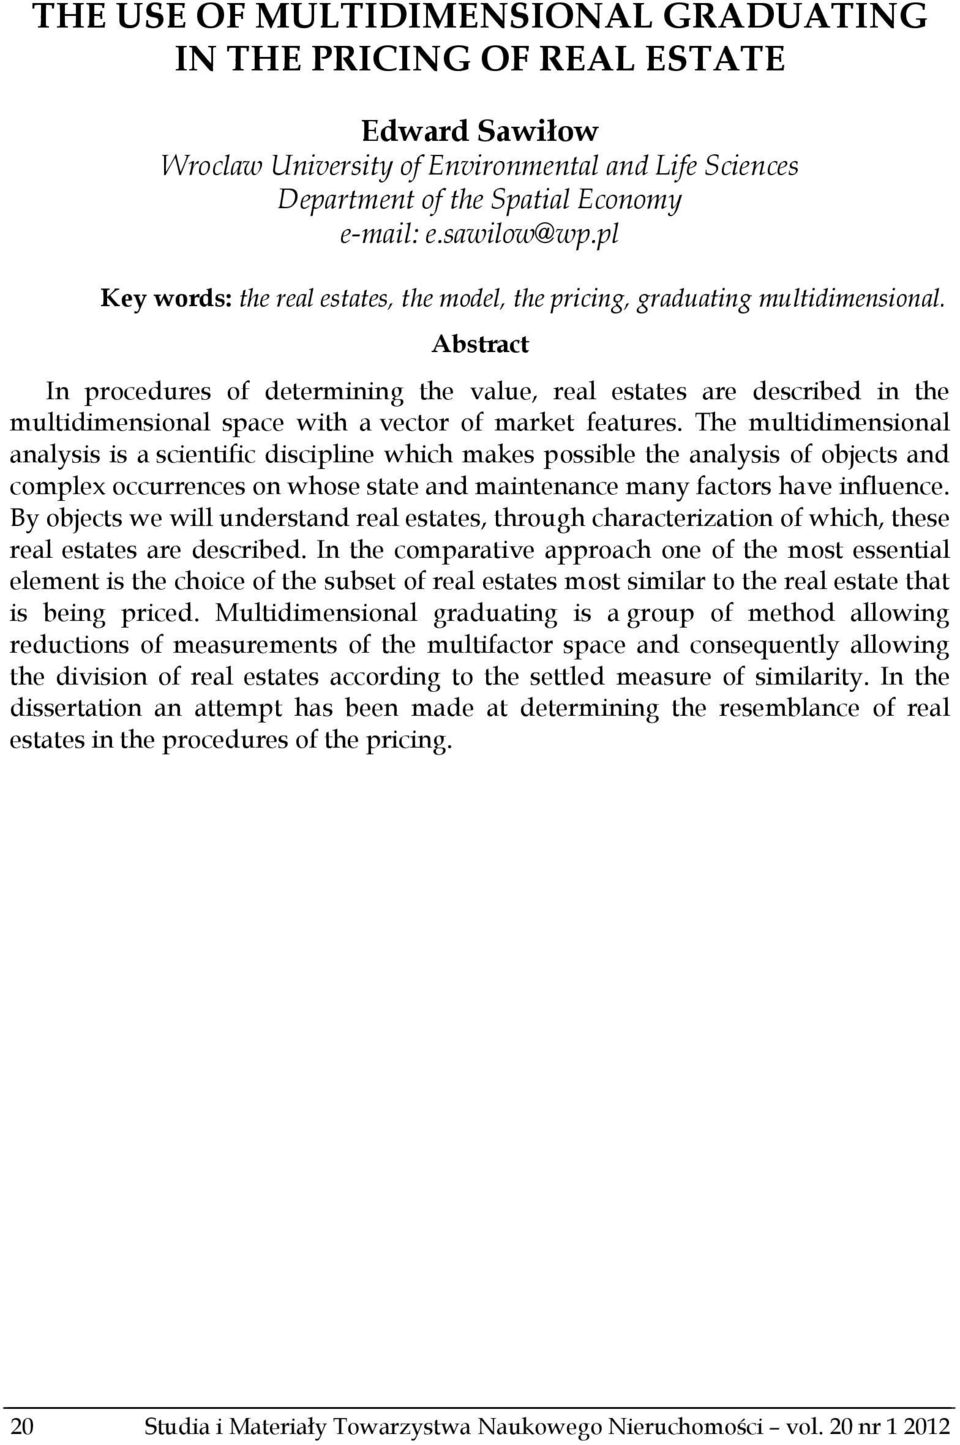 Abstract In procedures of determining the value, real estates are described in the multidimensional space with a vector of market features.